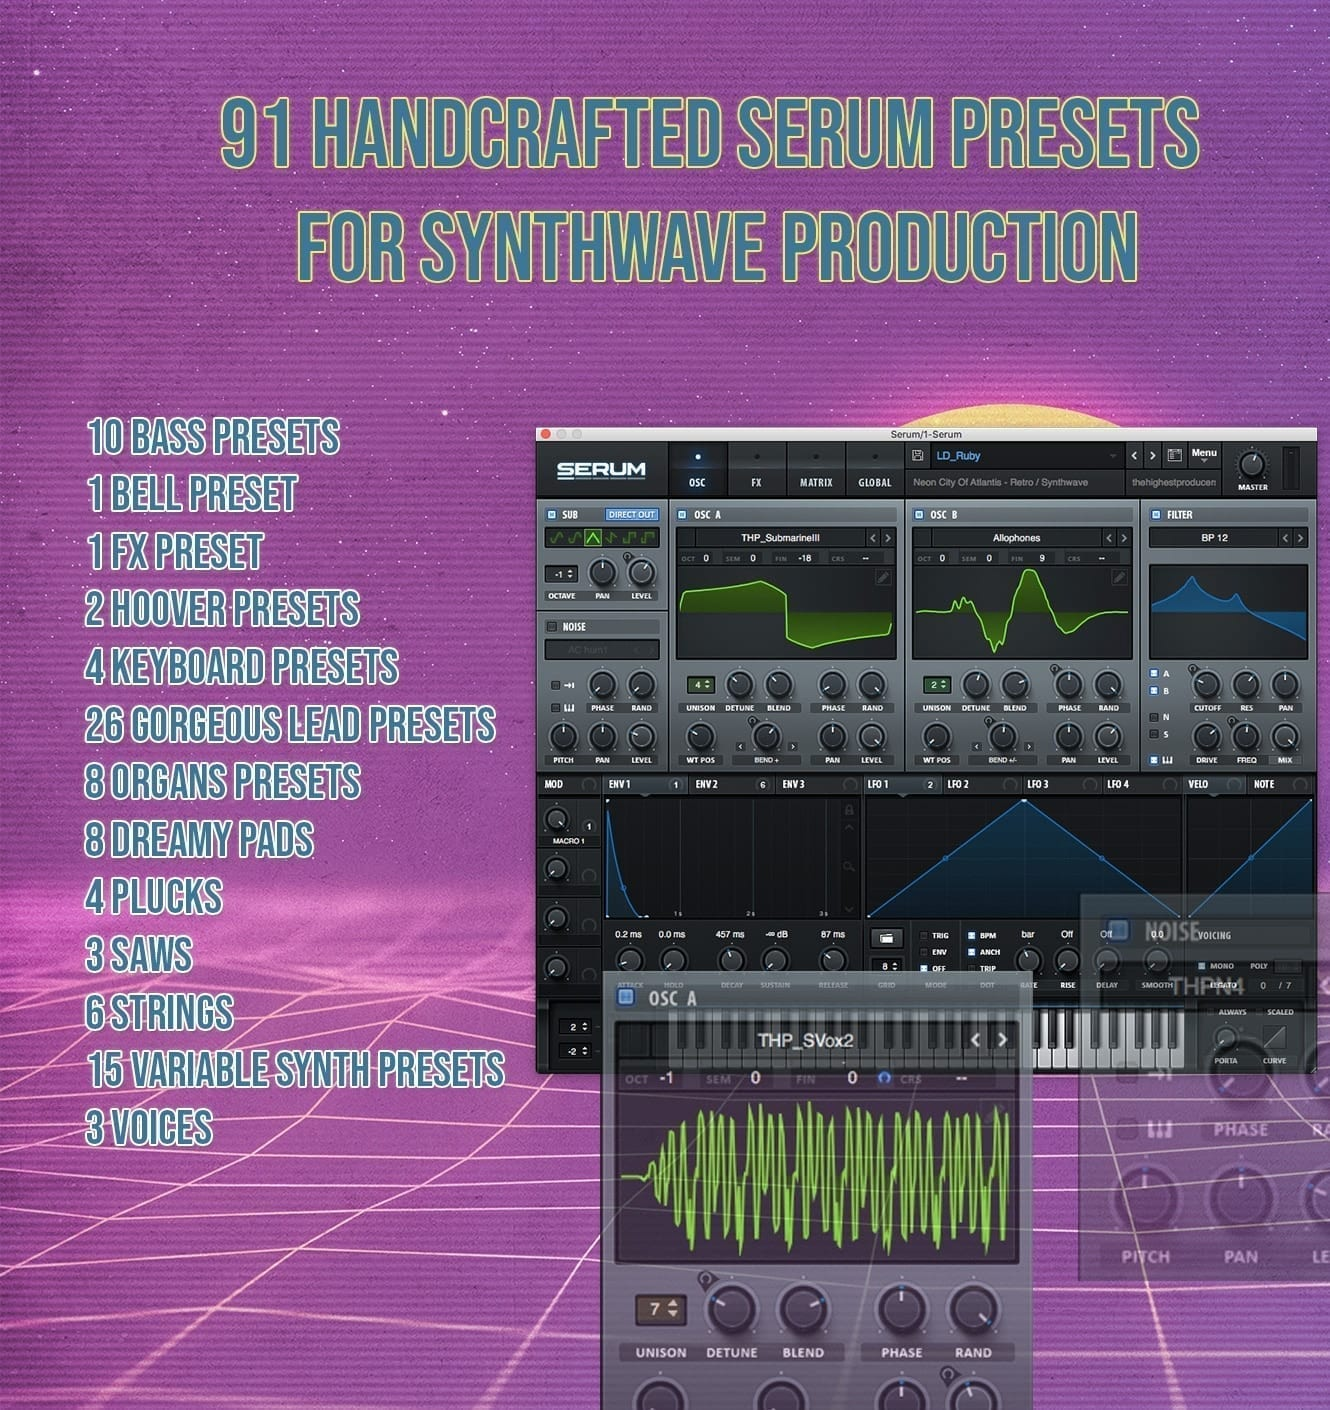 The best kit for serum synthwave production